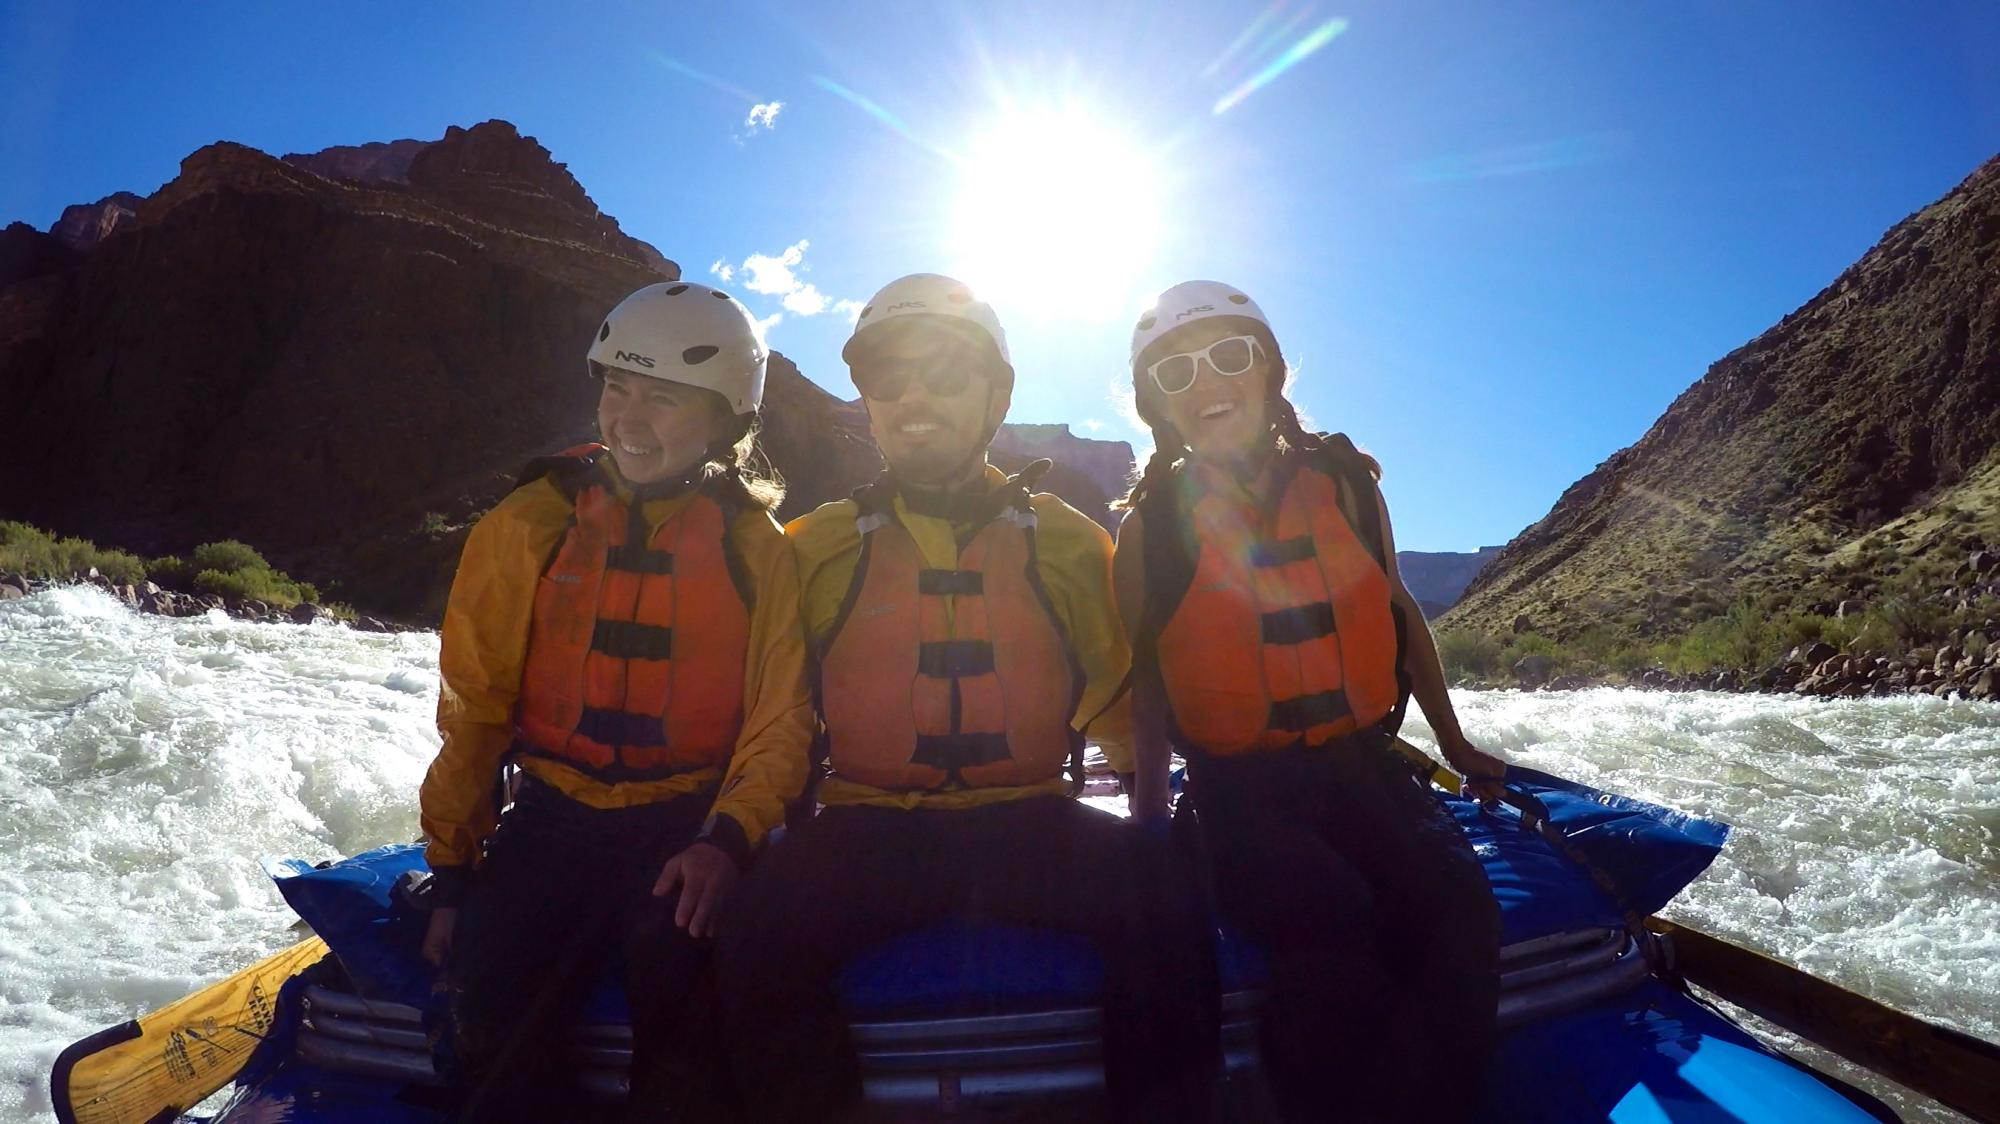 Two women and a man whitewater raft